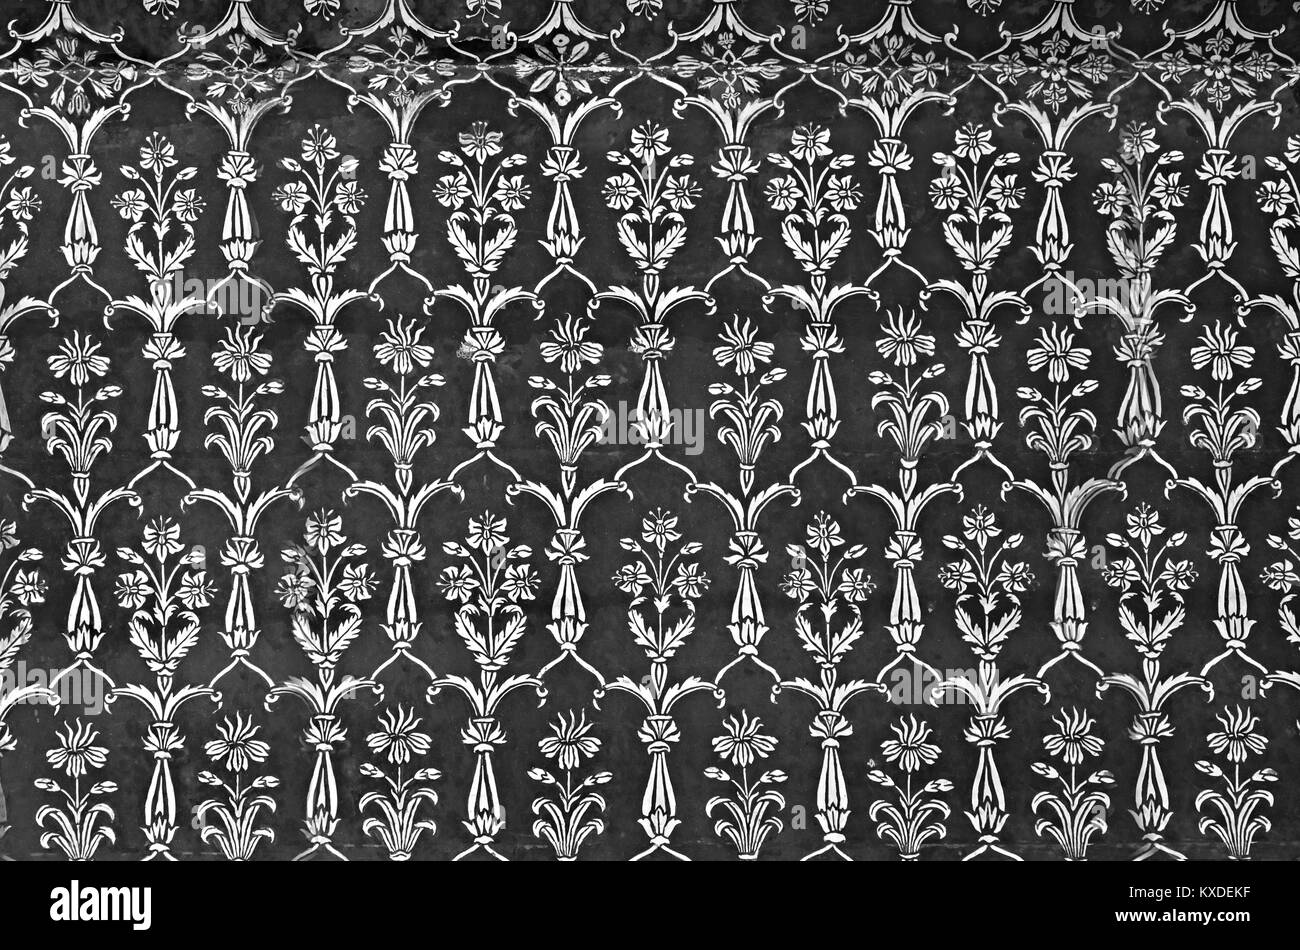 AGRA, INDIA - APRIL 10: Pattern on Taj Mahal on April 10, 2012 in Agra, India. Taj Mahal is widely recognized as - Stock Image